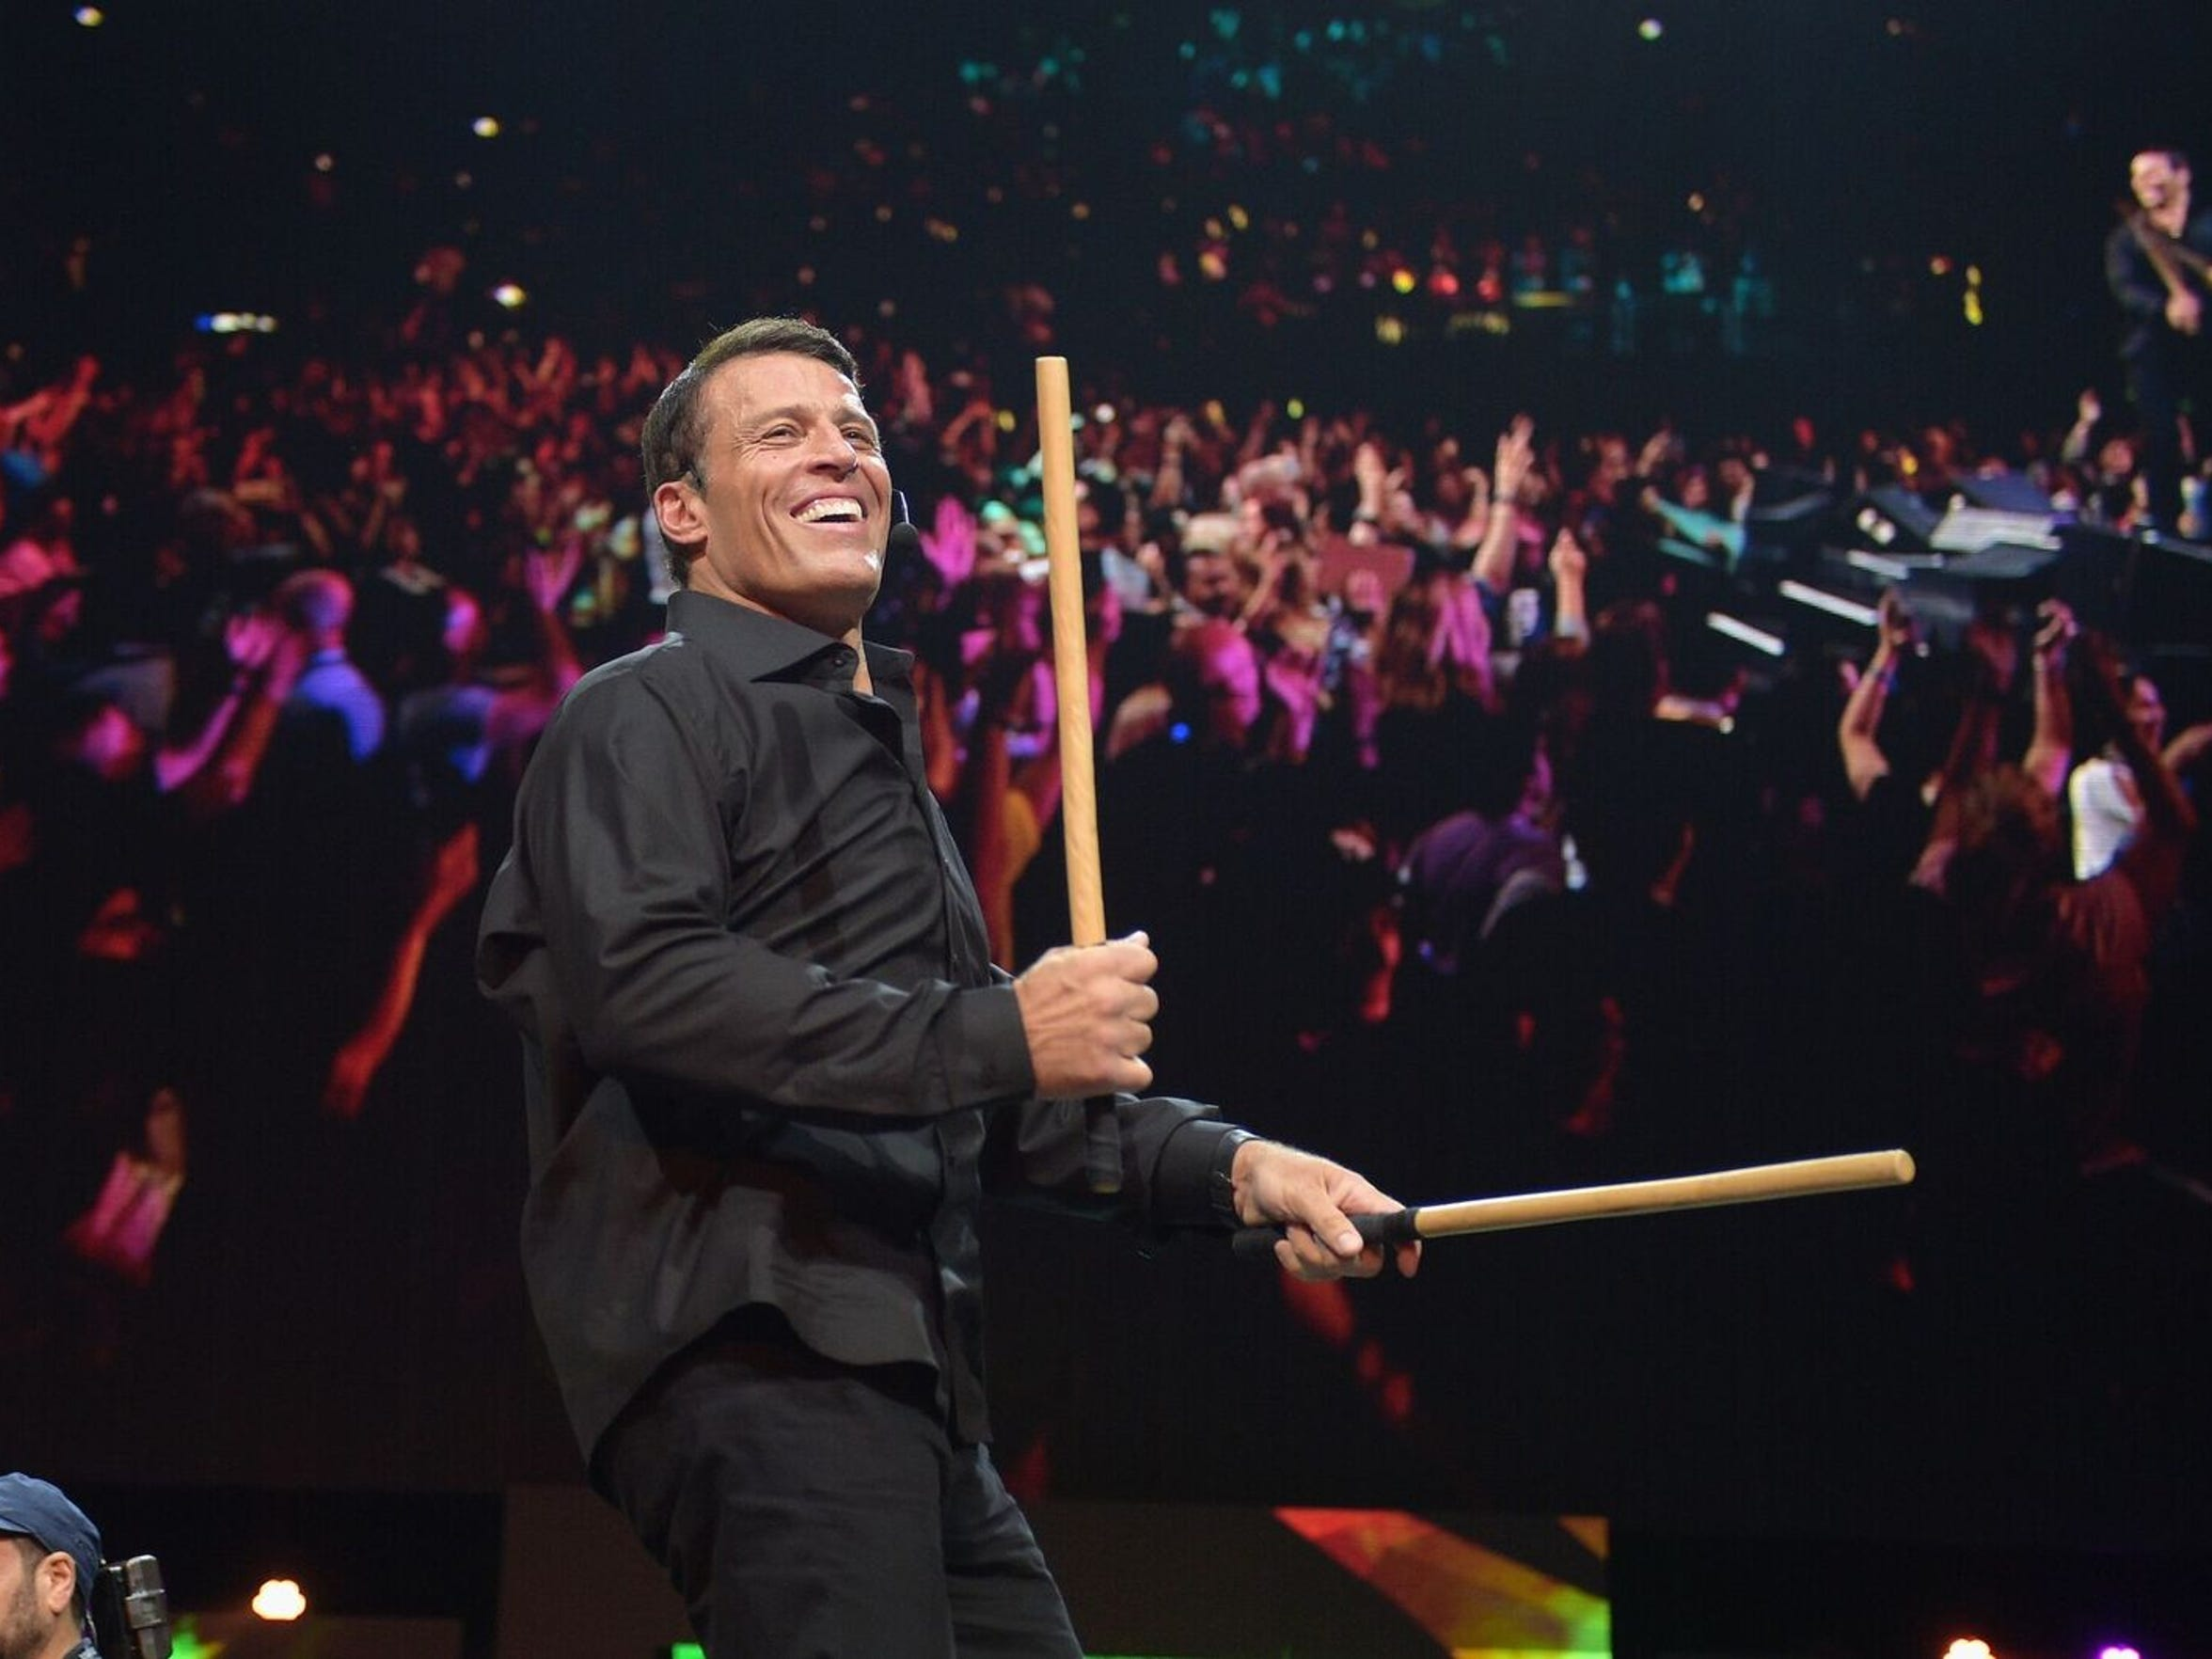 Tony Robbins bangs sticks together at the start of